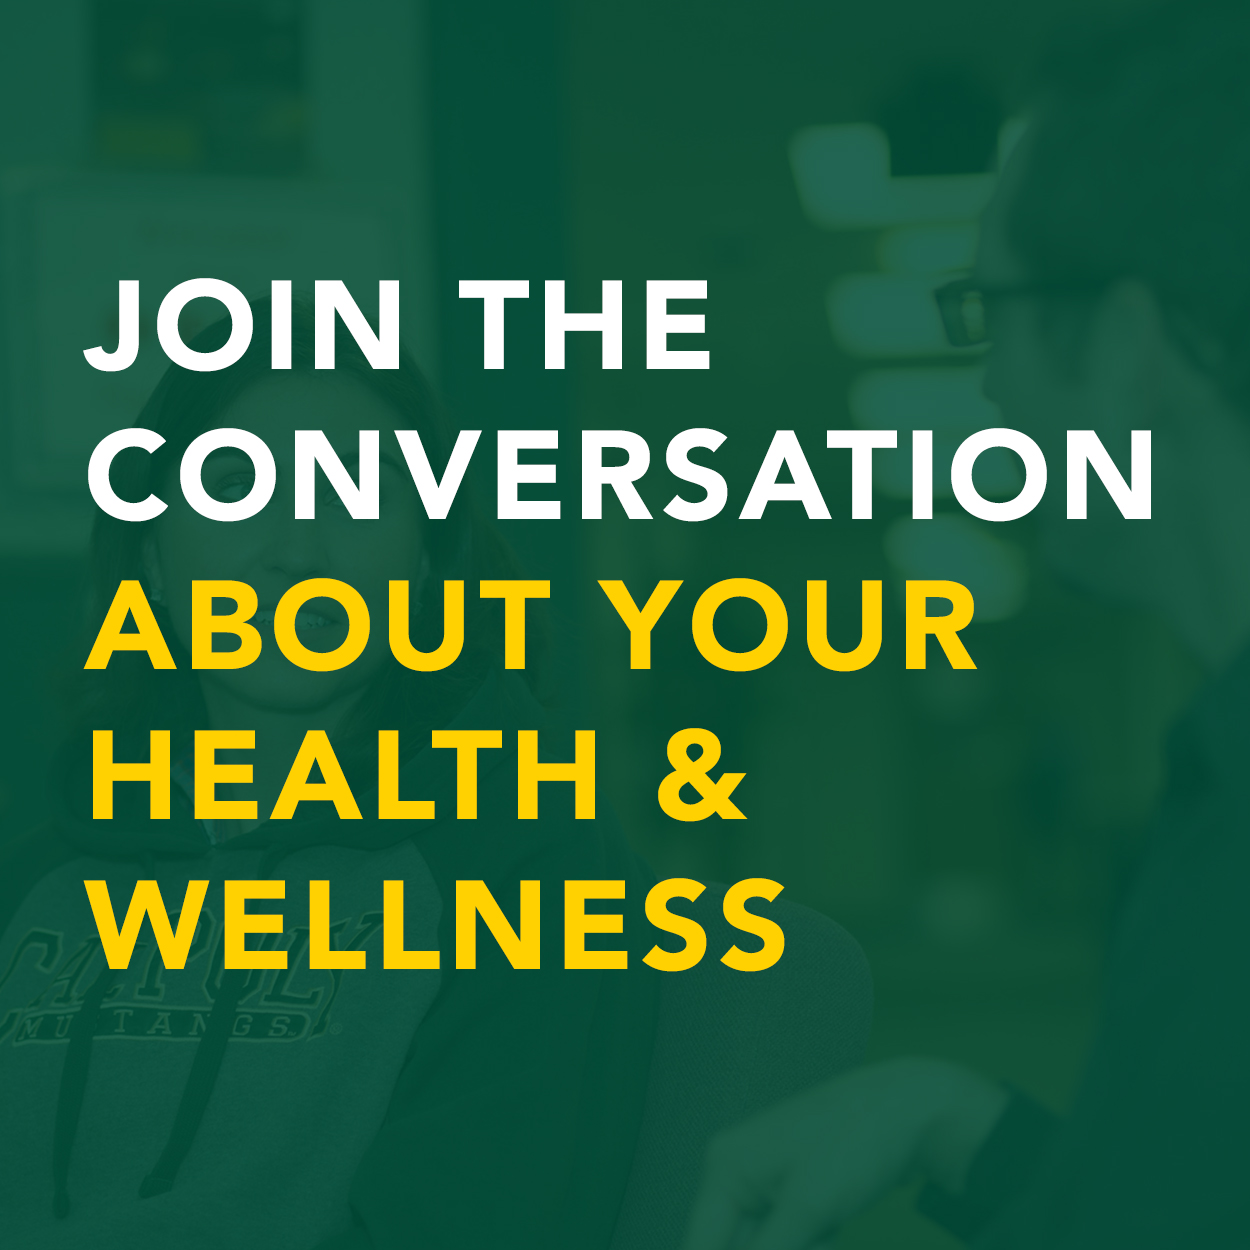 Join the conversation about your health and wellness